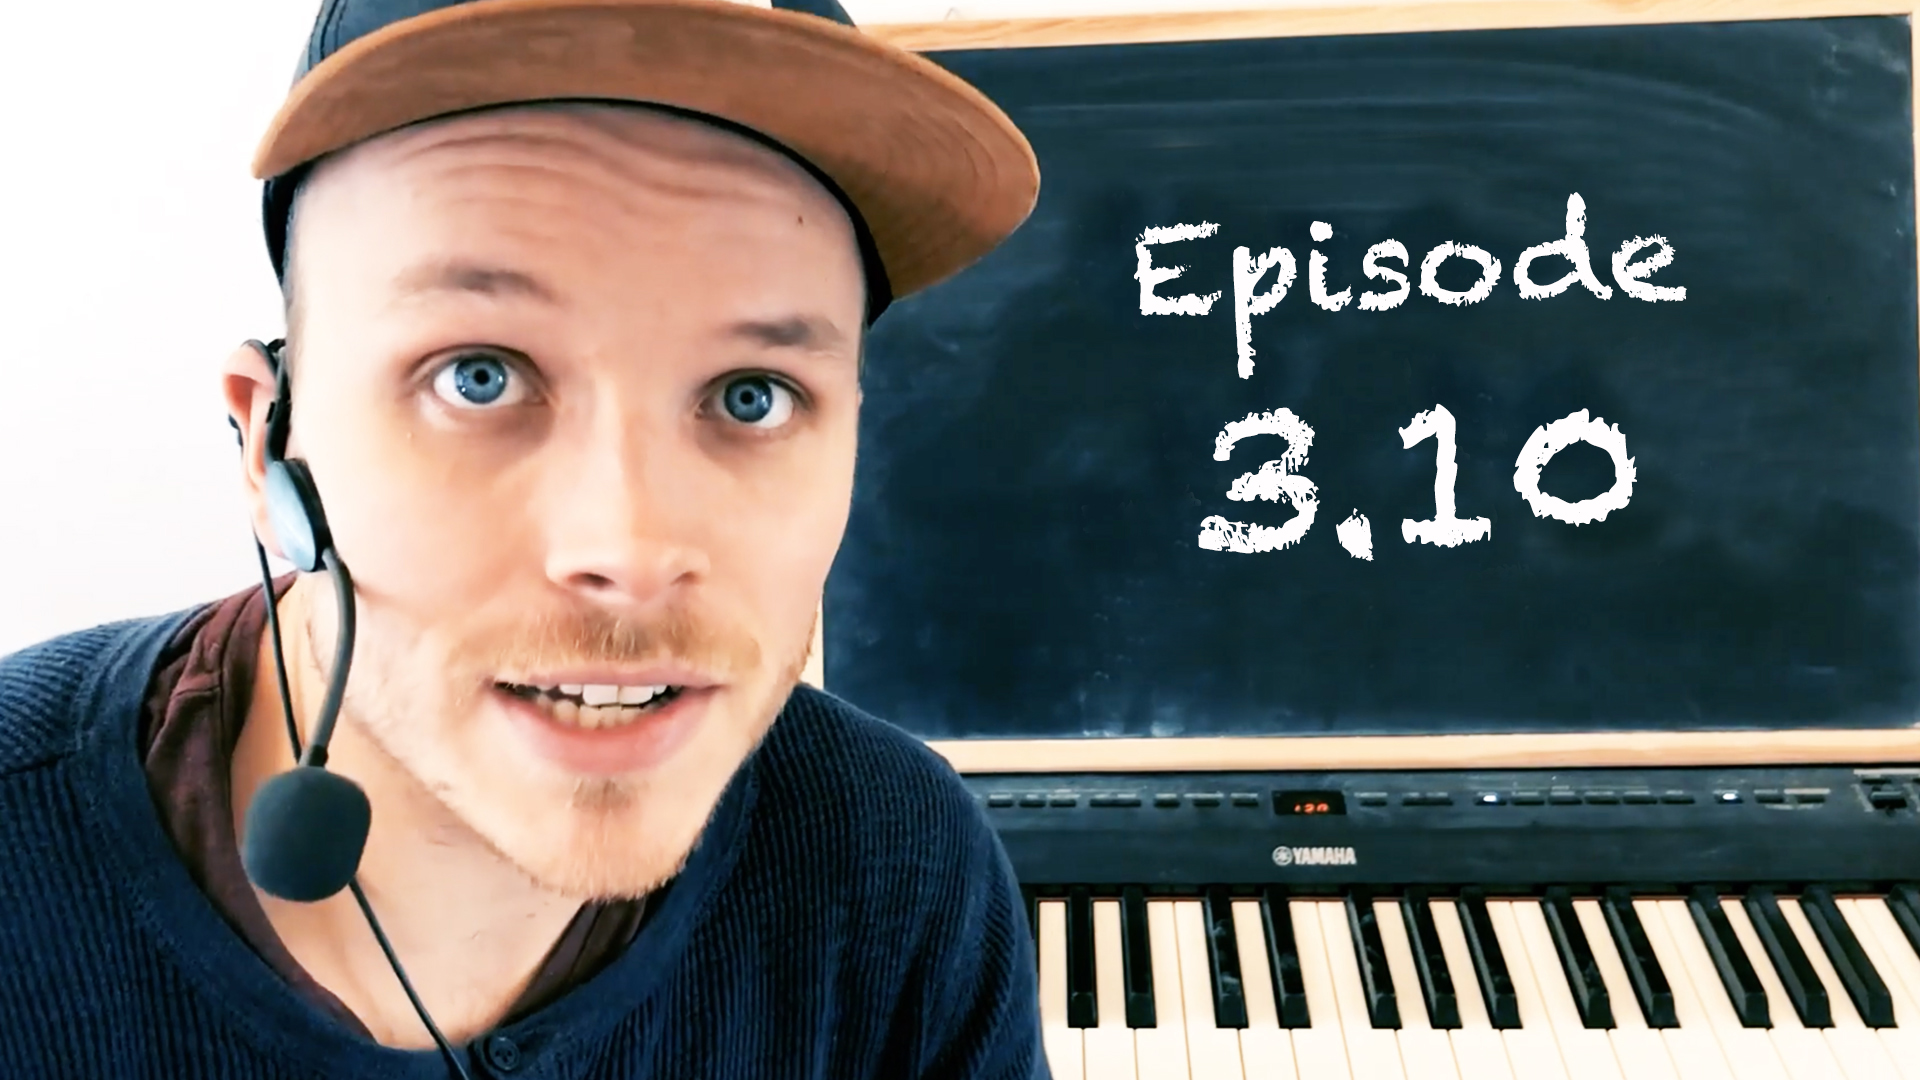 Ep 3.10 Let's Play Latin Piano